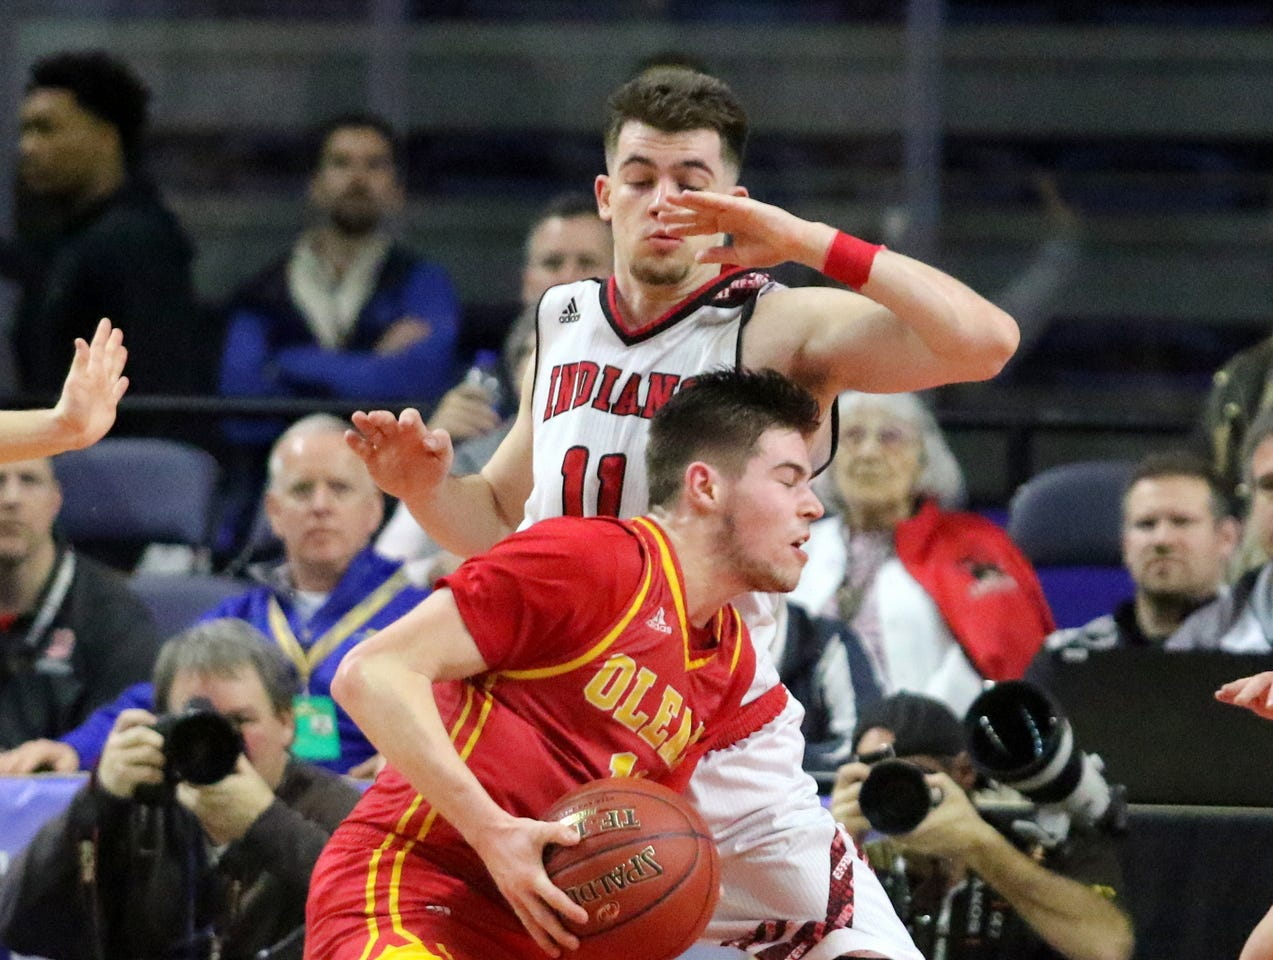 Joseph Girard III of Glens Falls defends Mike Schidt during an 83-63 win over Olean in a Class B boys basketball state semifinal March 15, 2019 at Floyd L. Maines Veterans Memorial Arena in Binghamton.